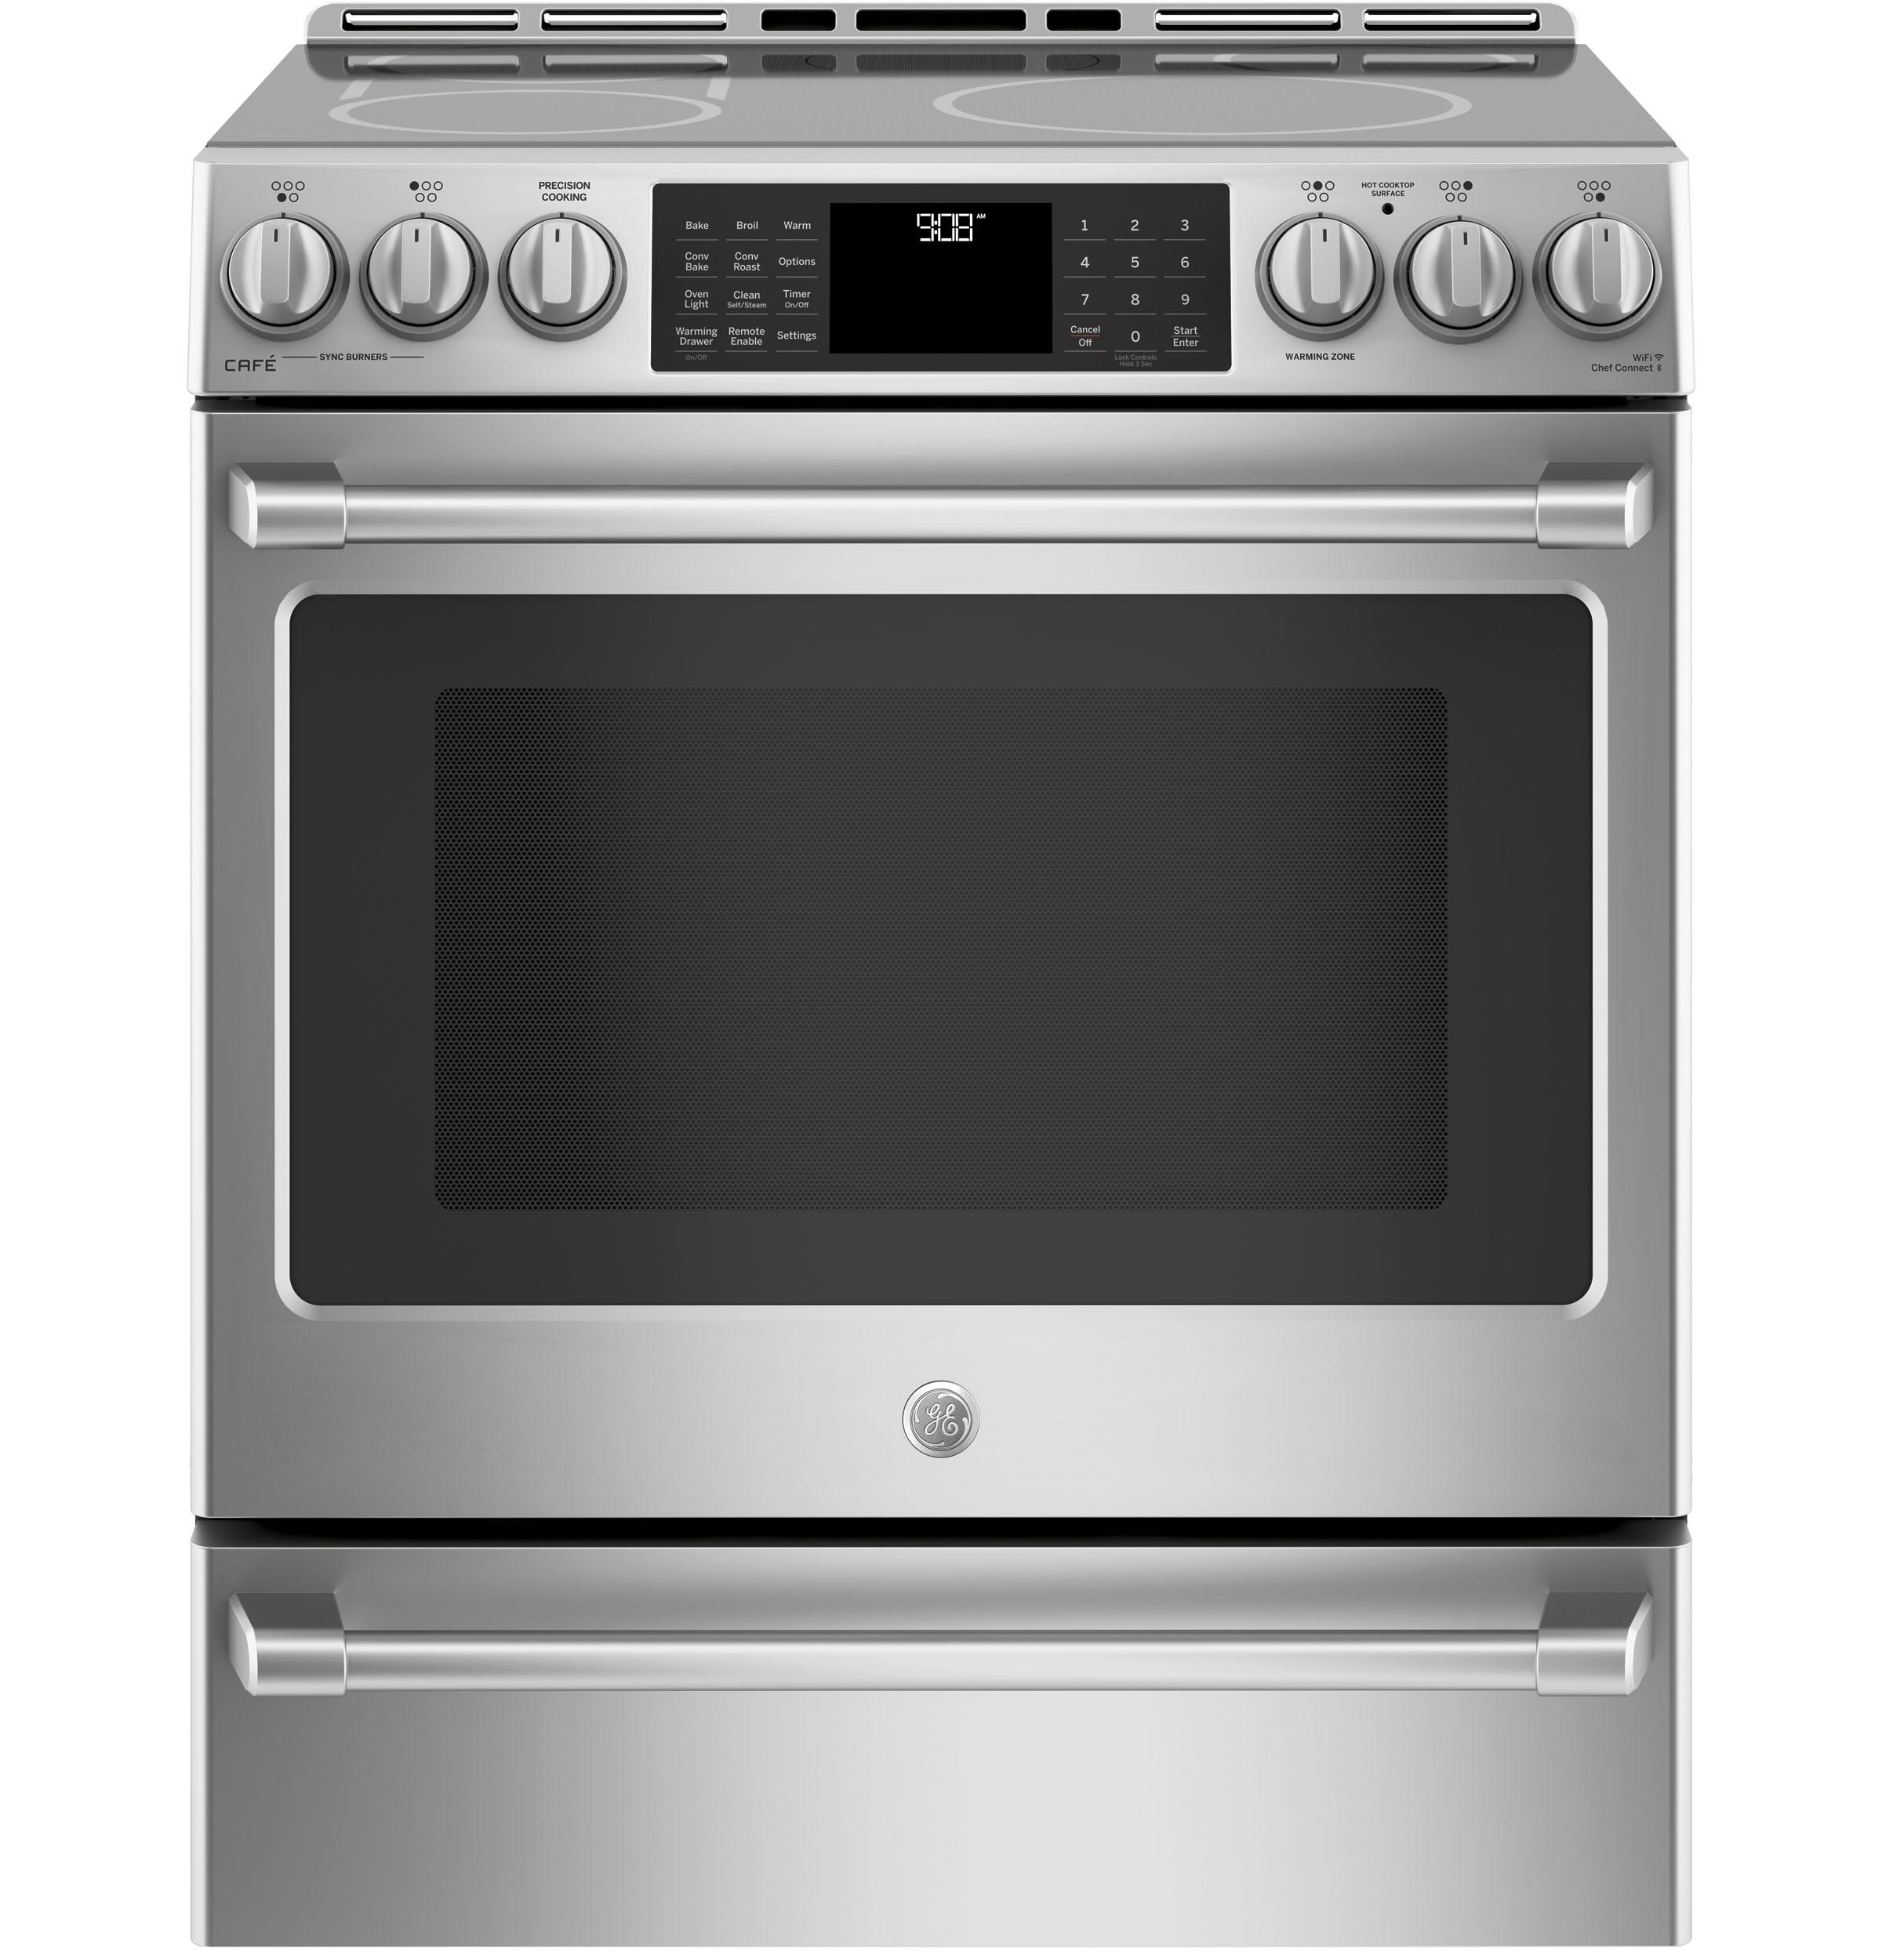 "GE Cafe Series 30"" Slide-In Front Control Induction and Convection Range with Warming Drawer